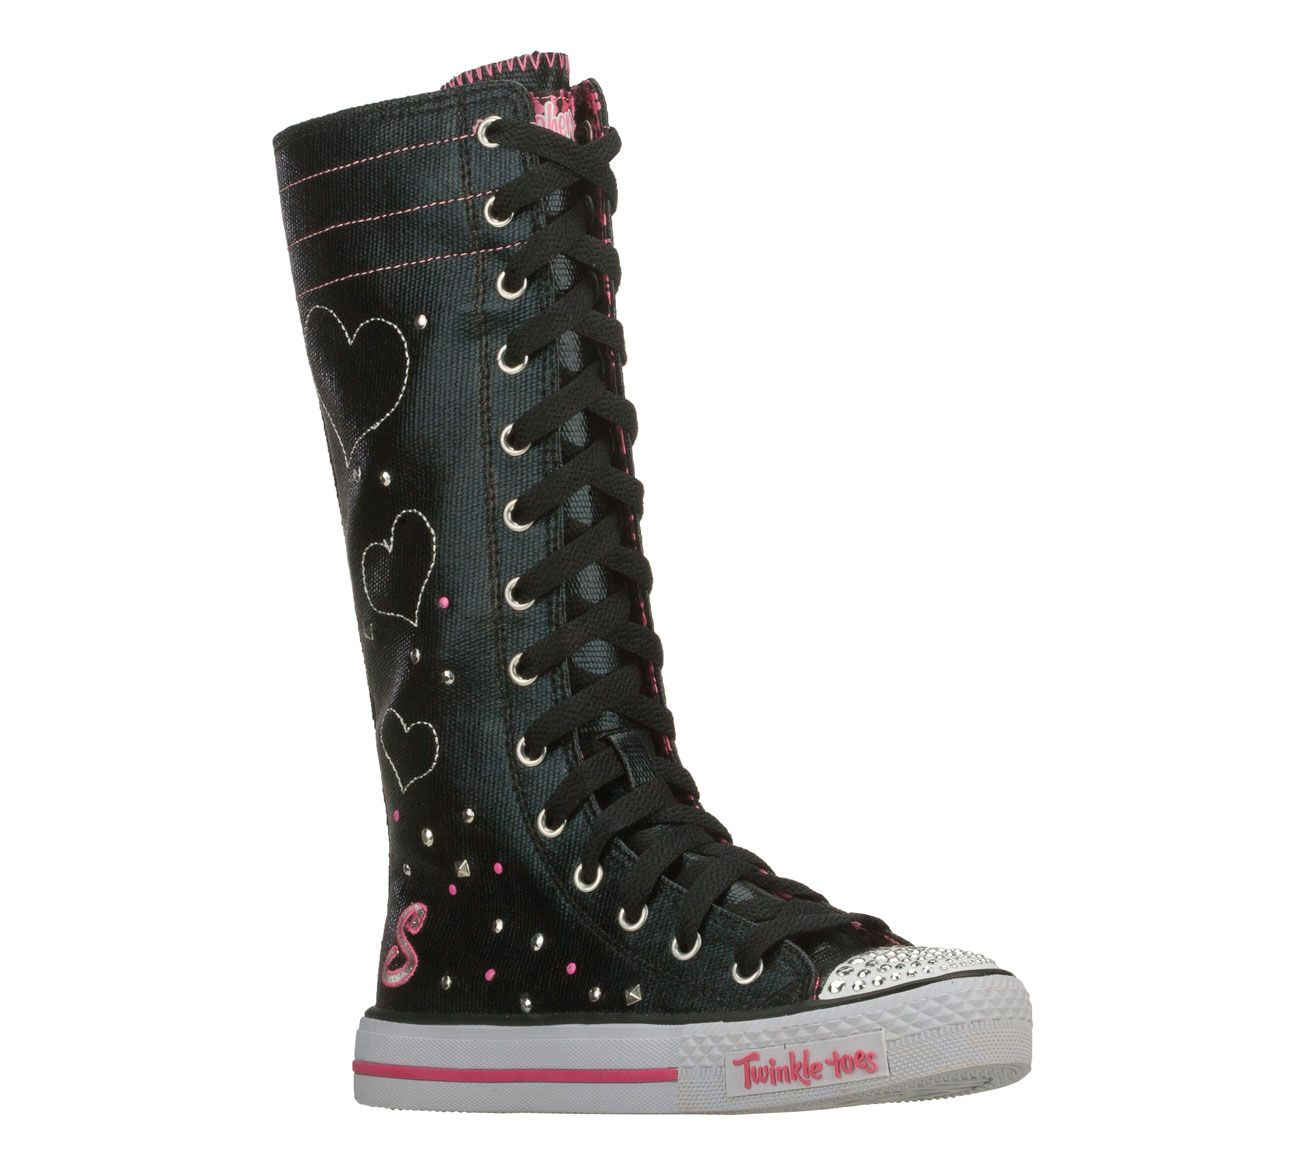 Buy Skechers Girls Twinkle Toes Shuffles Star Keepers High Top